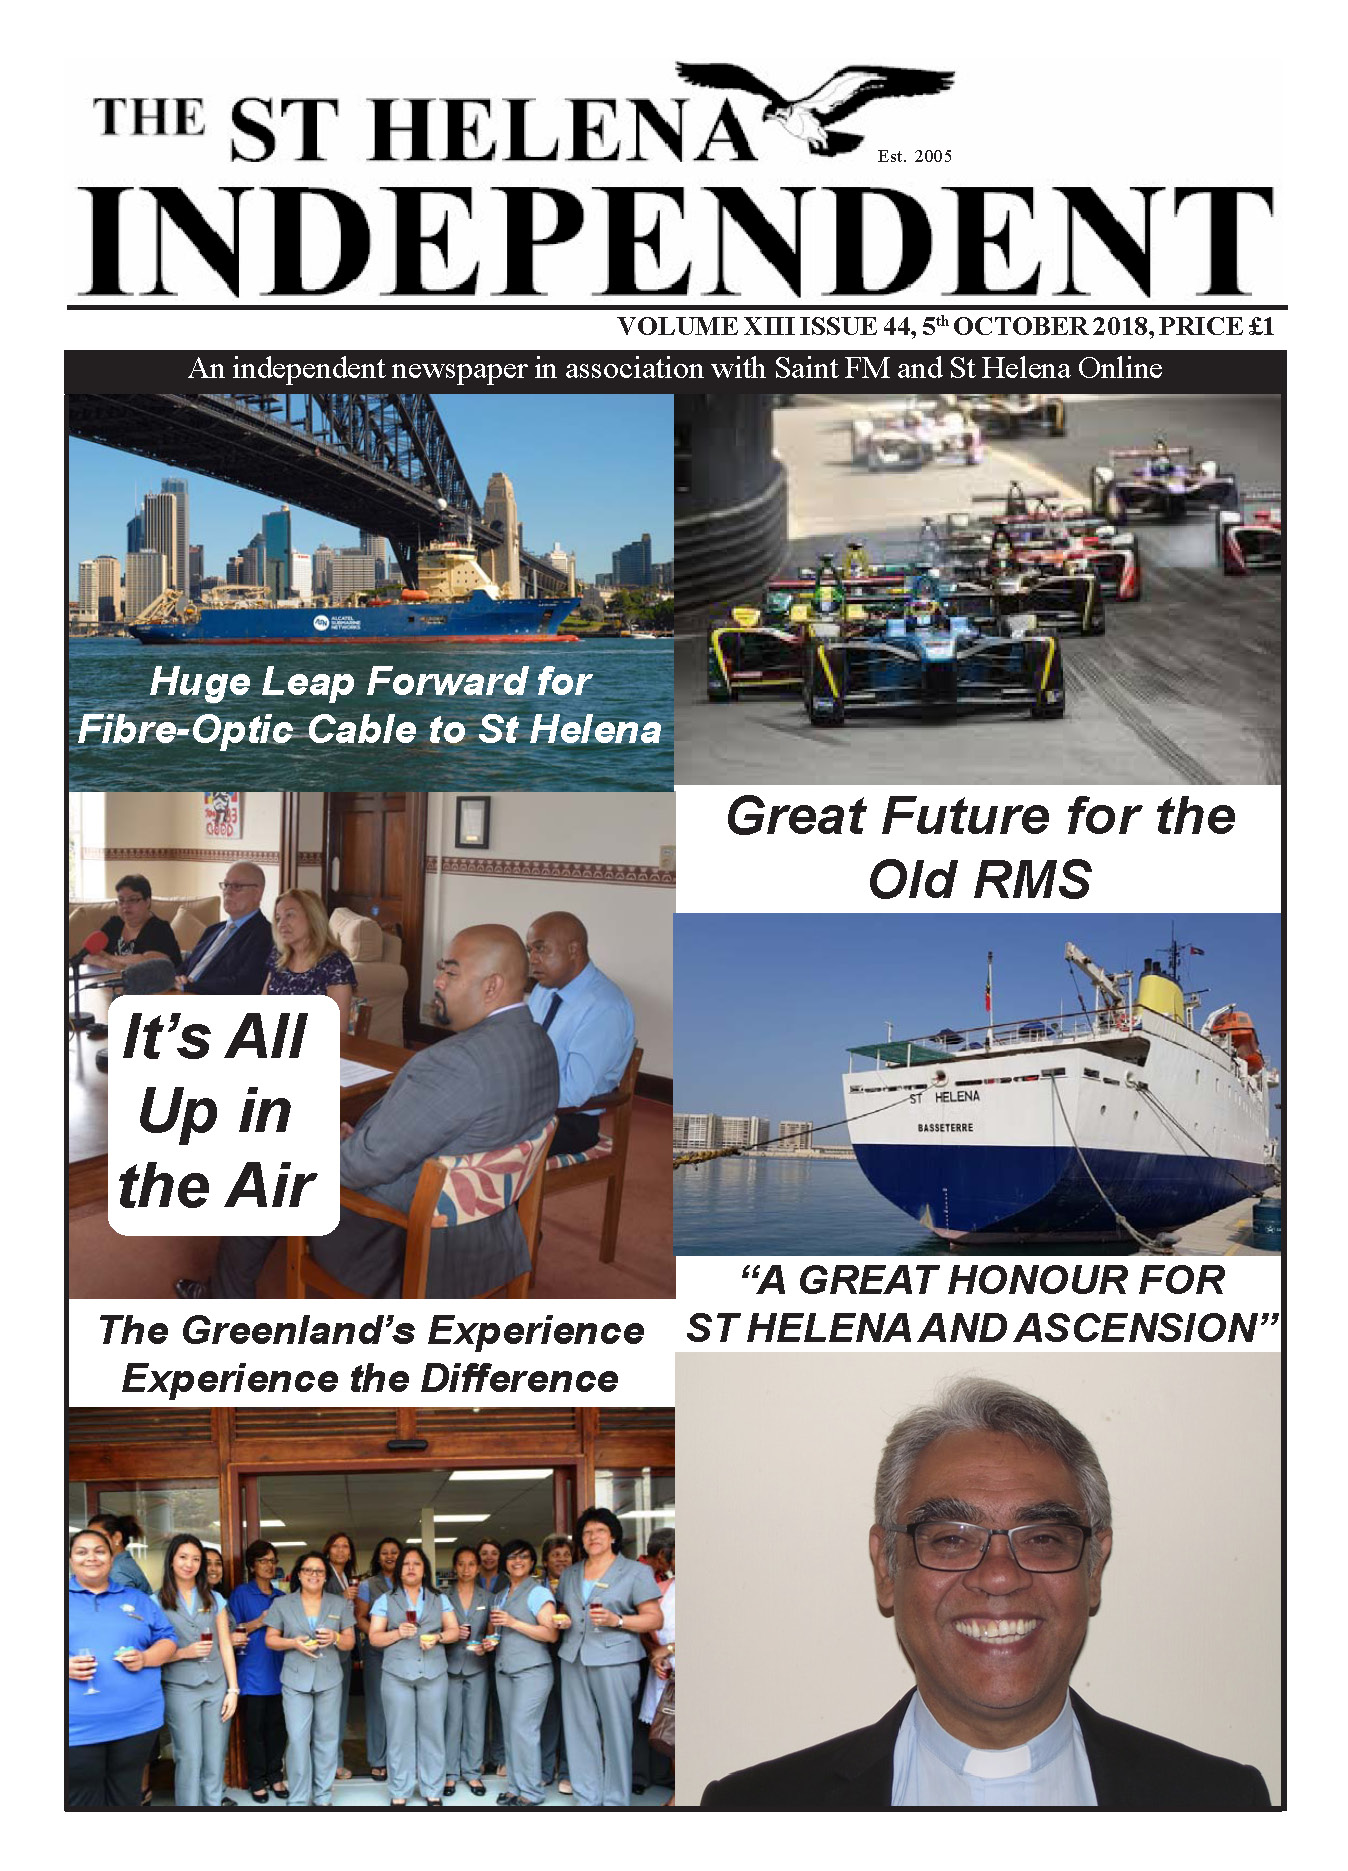 St Helena Independent 20181005 page 1